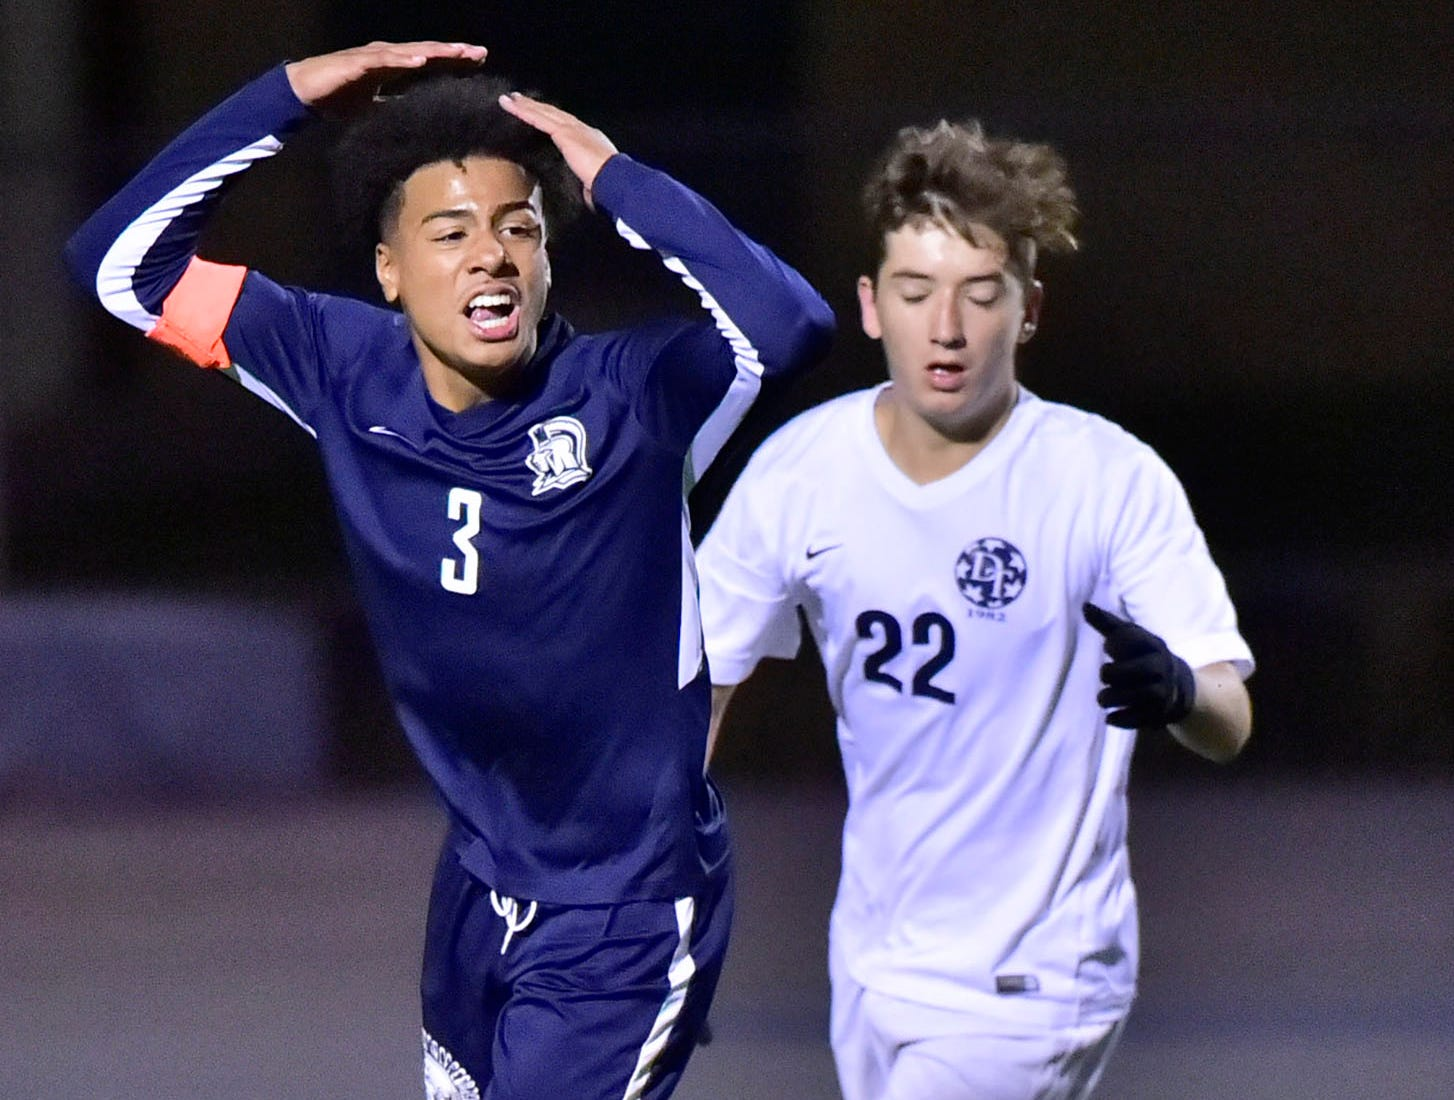 Ebe Hewitt (3) of Chambersburg reacts to a goal shot that went wide as Joe Thomas (22) moves in for Dallastown. Chambersburg lost a first round D3 soccer match to Dallastown 2-1 on Tuesday, Oct. 23, 2018.